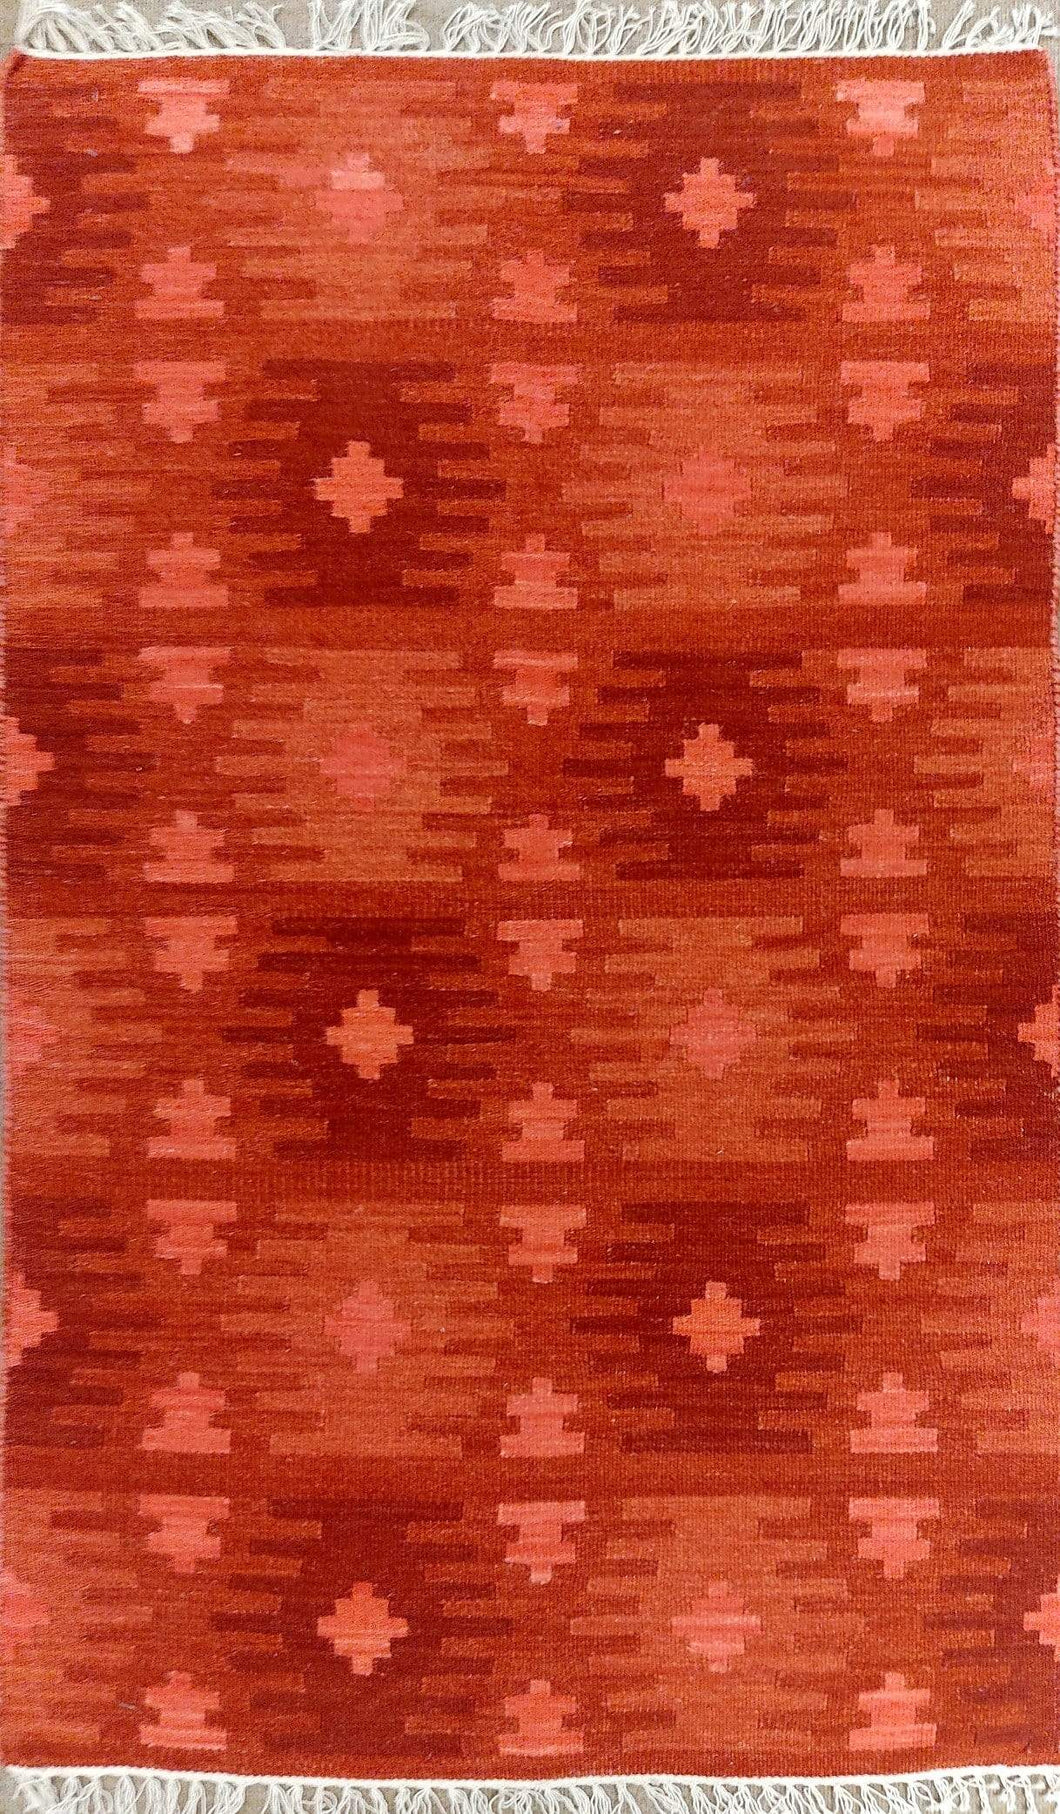 The Rugs Cafe Dhurries 3 x 5 / Red Hand Made Wool Persian Tribal Rug with Geometric Pattern [Handmade]